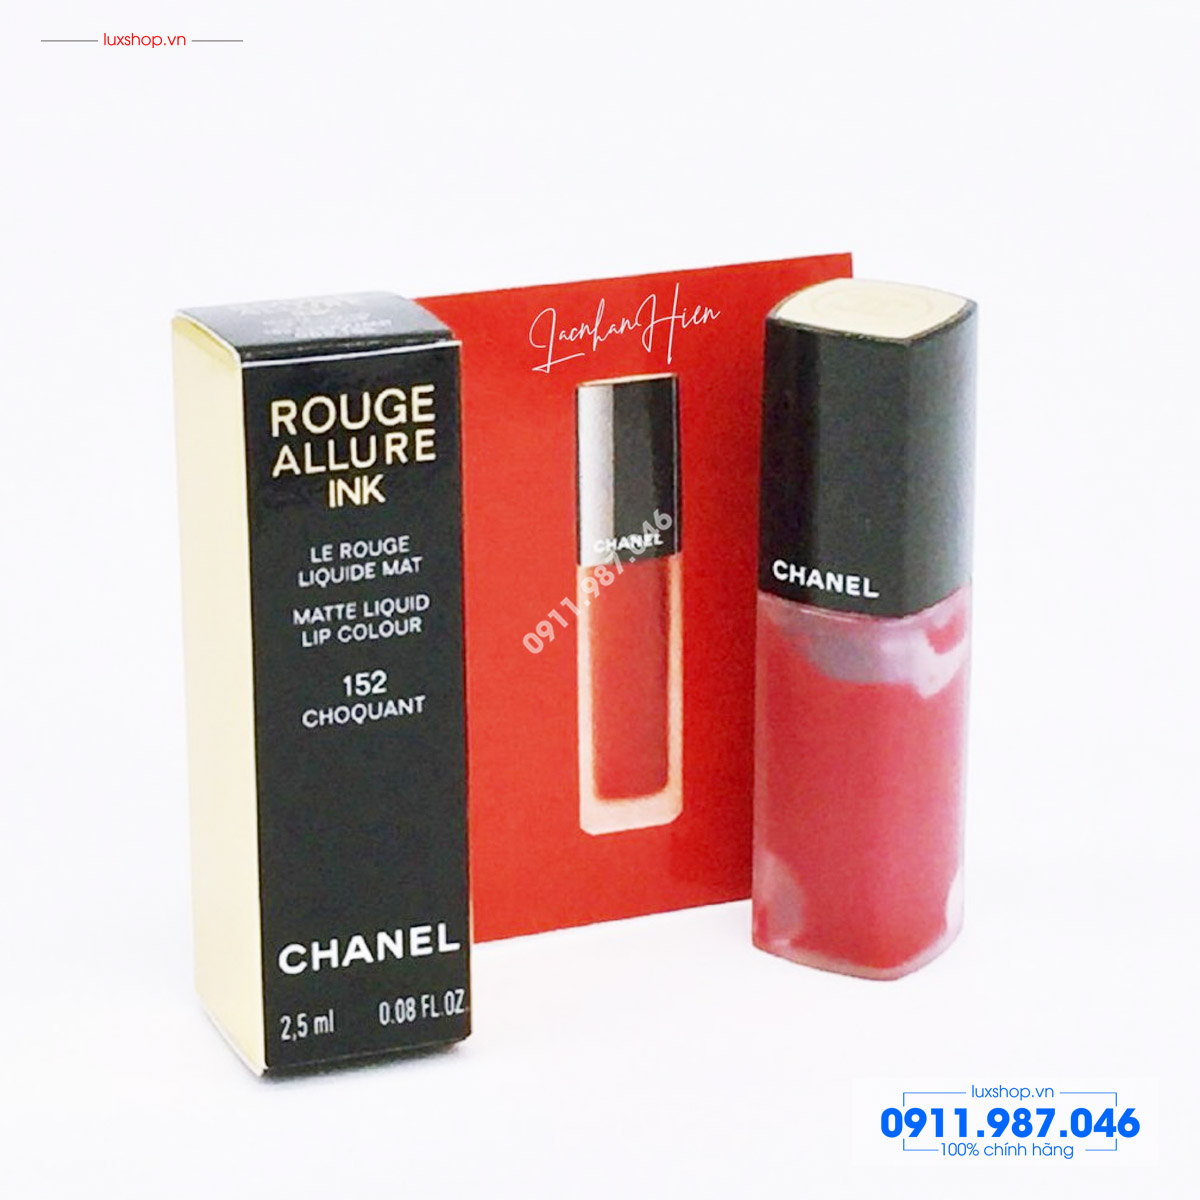 son-chanel-rouge-allure-ink-mini-25ml-mau-152-choquant-chinh-hang-phap